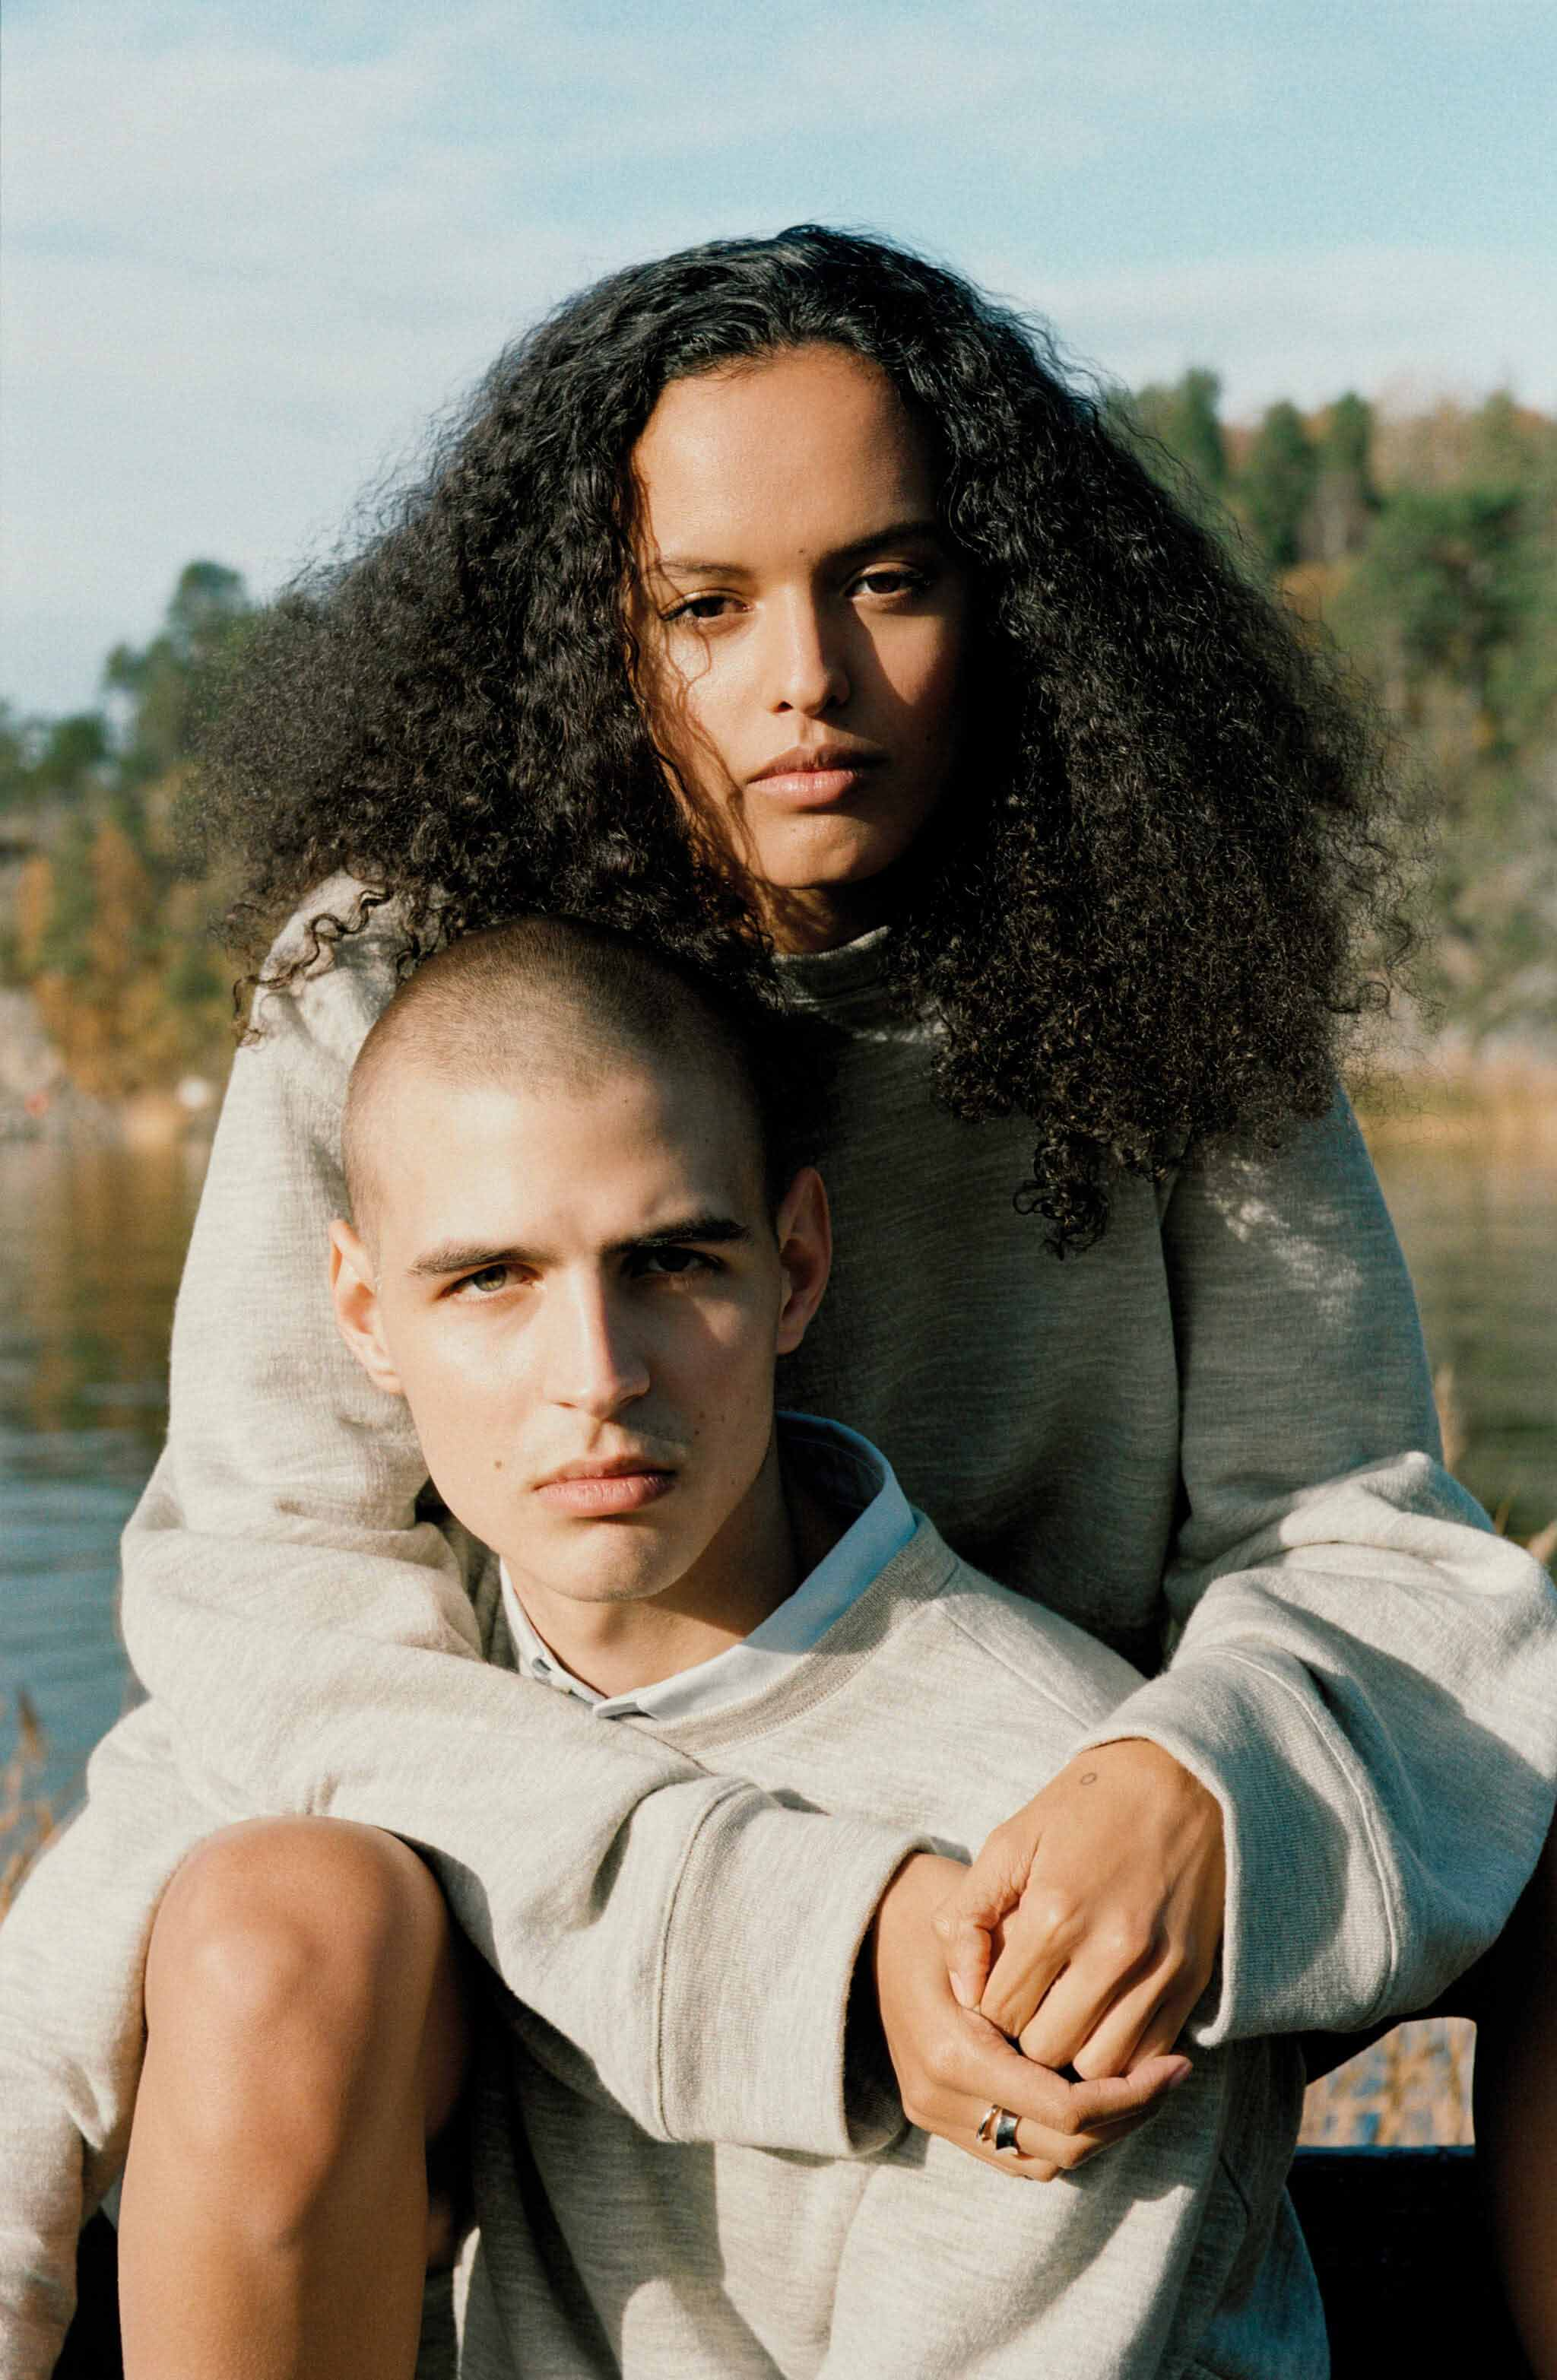 A woman of Swedish-African descent and a man of white Swedish descent wearing grey, sustainably made sweatshirts, posing in front of a body of water in Värmdö, Sweden